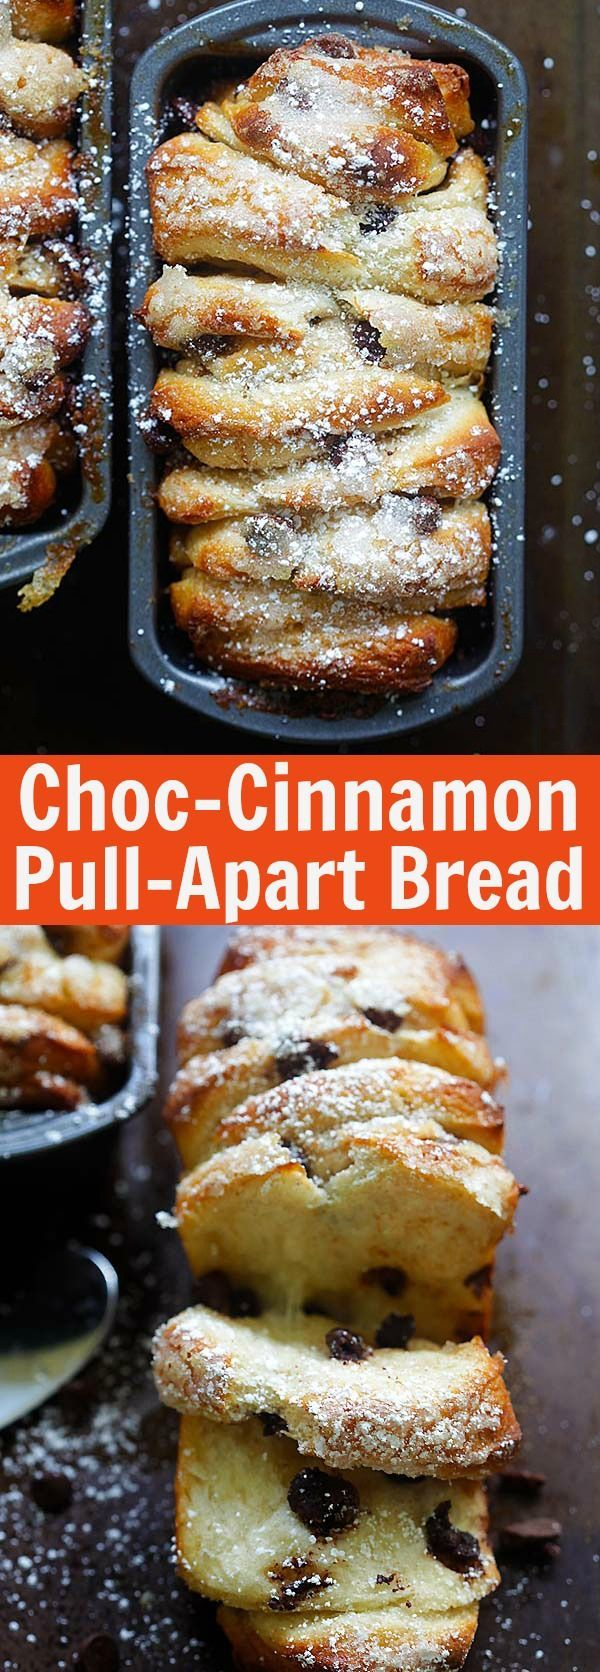 Chocolate-Cinnamon Pull-Apart Bread - Crazy delicious pull-apart bread loaded with chocolate chips and cinnamon. A must-bake